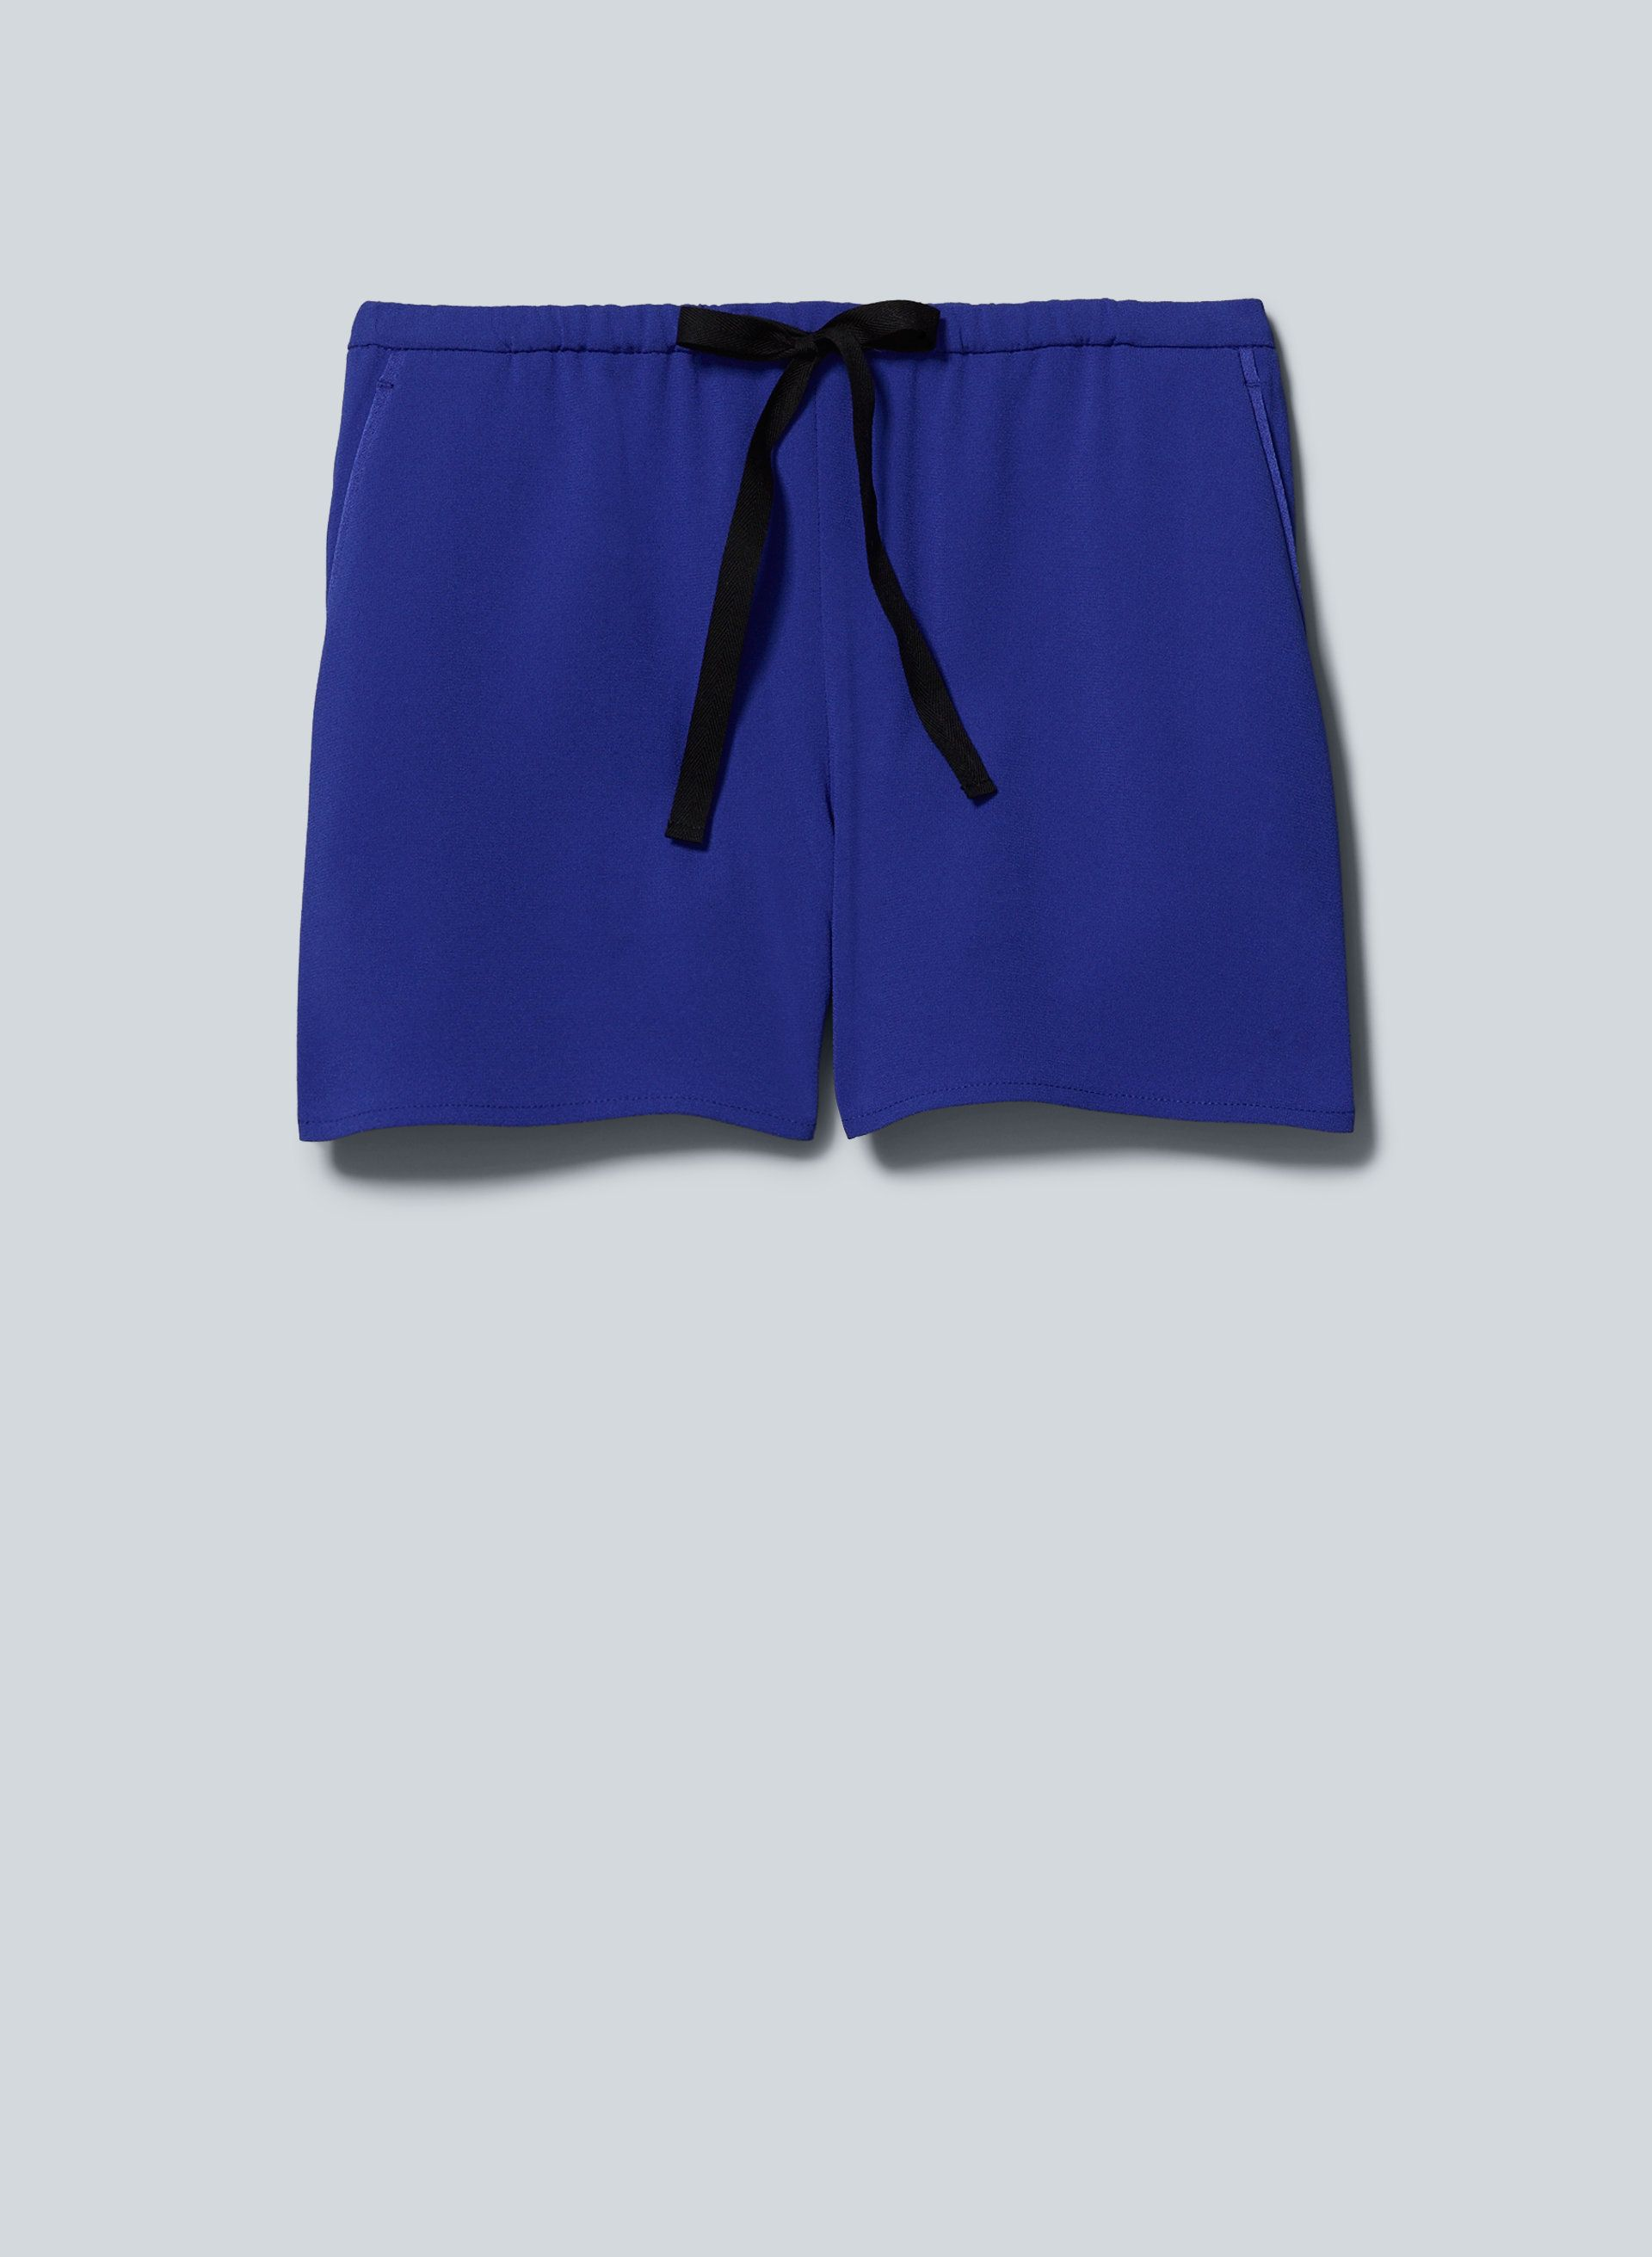 Babaton Aaron Shorts, now available at Aritzia.com.